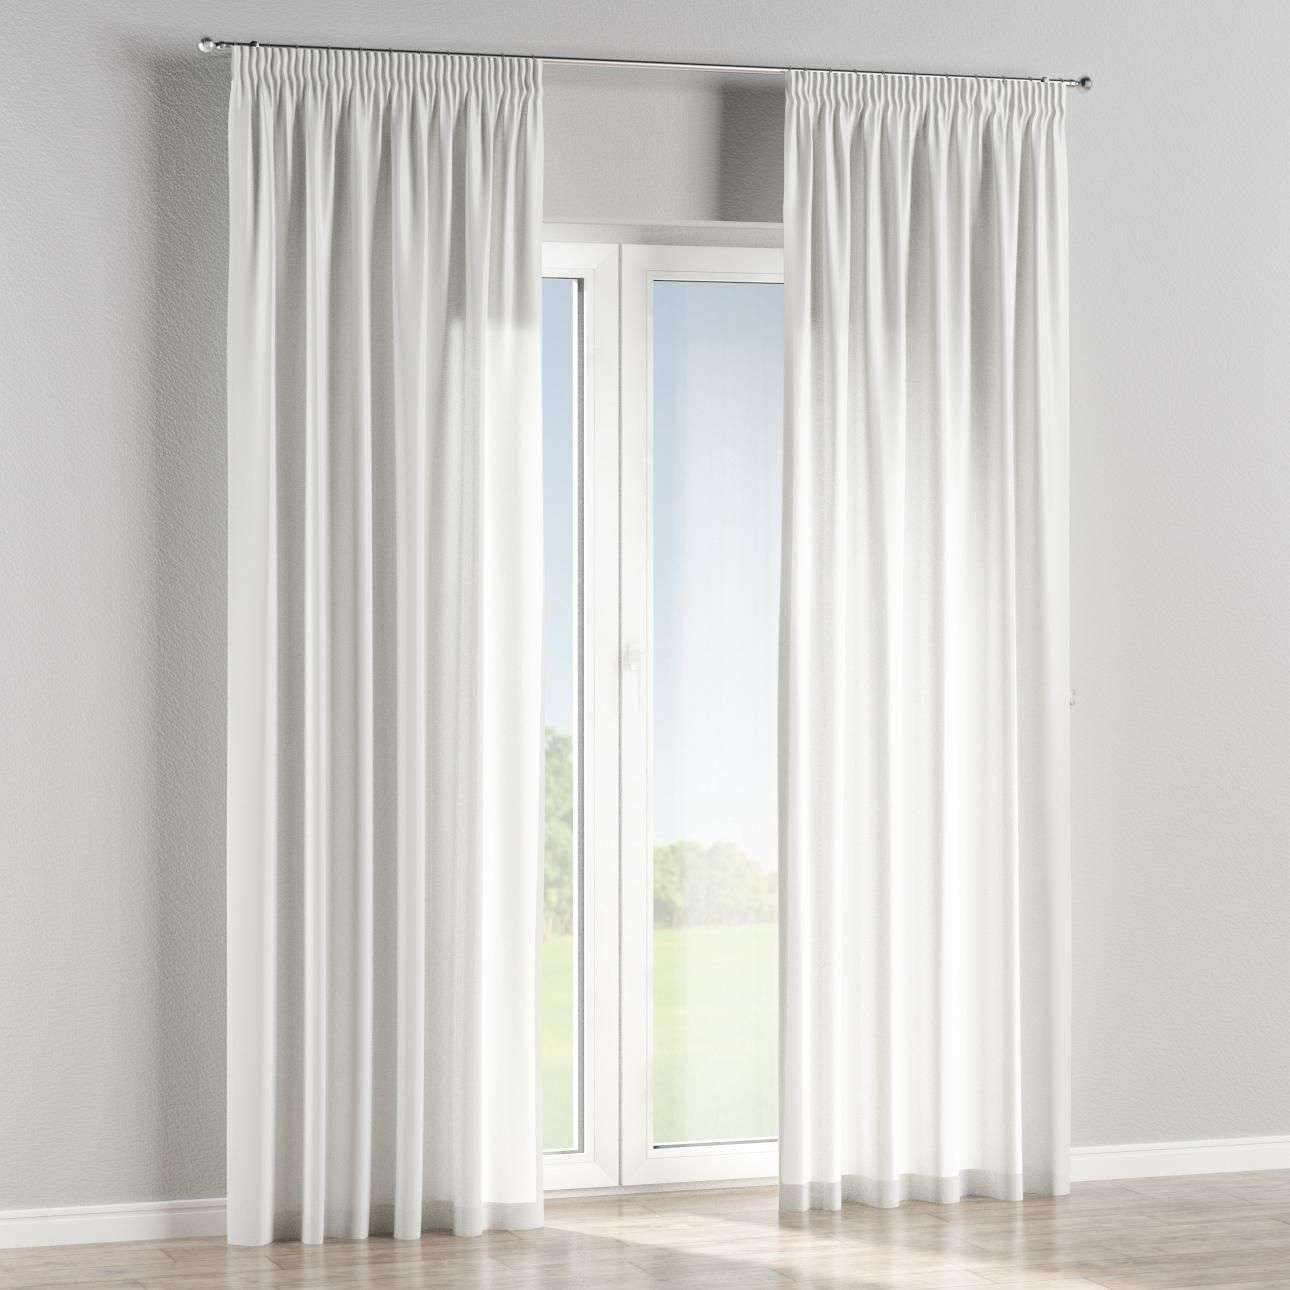 Pencil pleat lined curtains in collection Rustica, fabric: 138-13